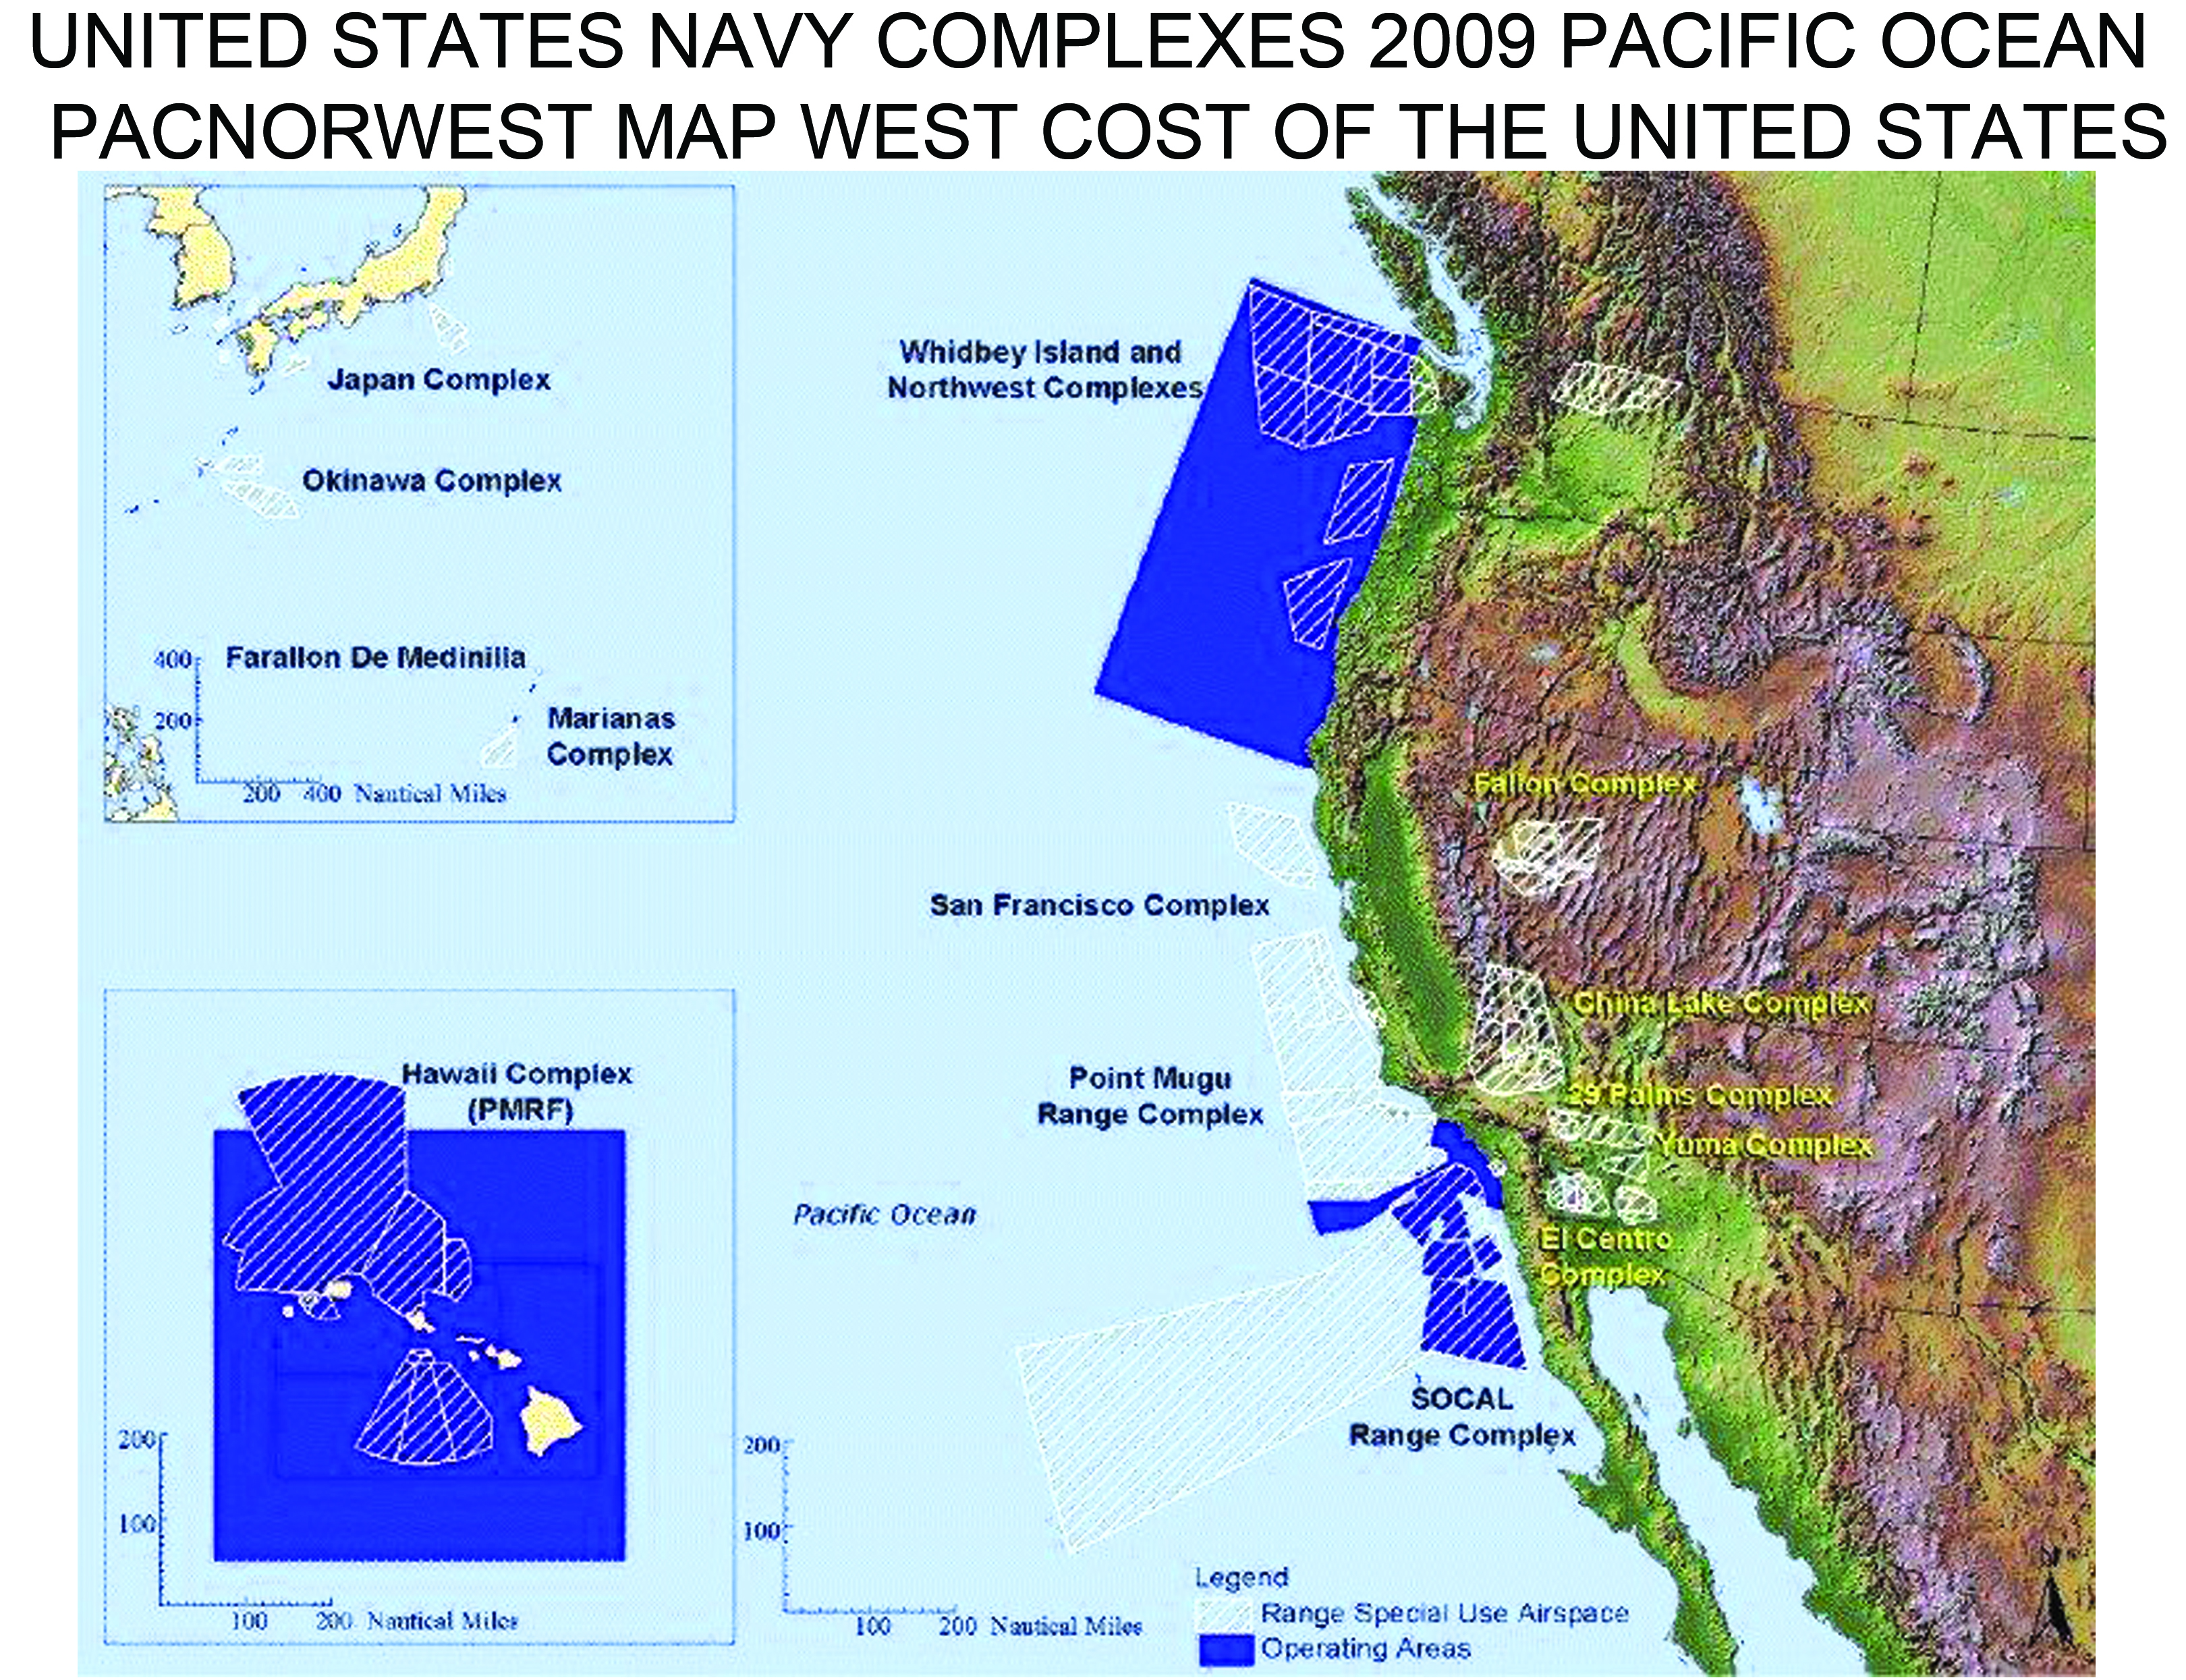 US Navy Pacific Warfare Testing Ranges War Costs